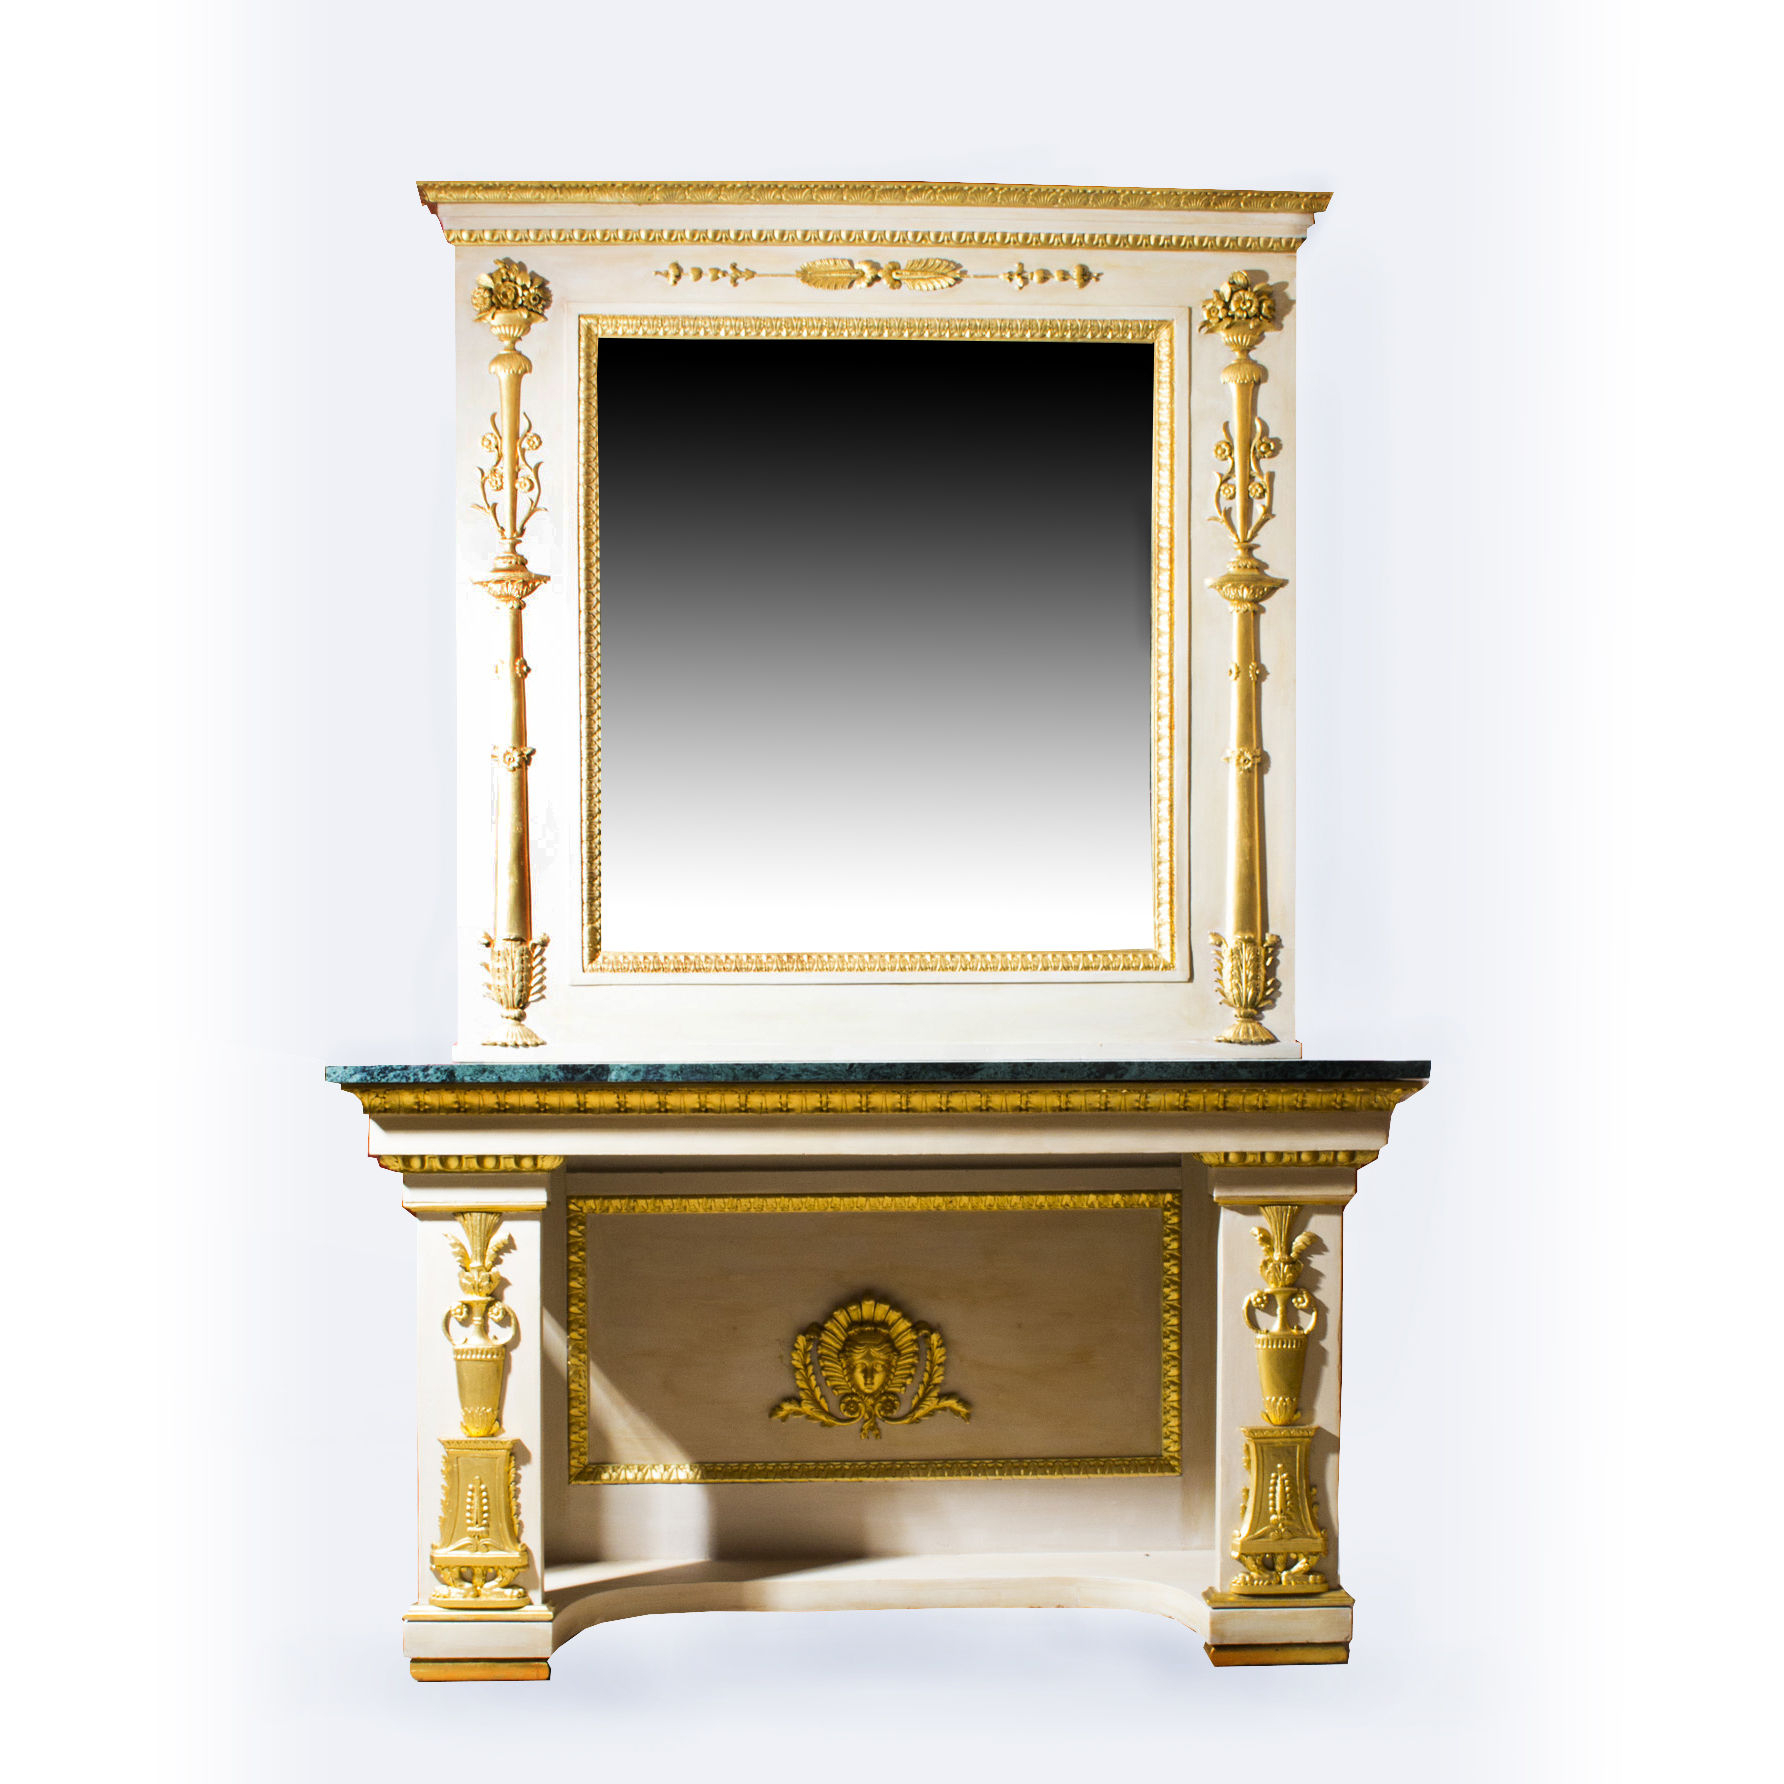 Antique Roman Console Table With Mirror & Marble Top 248 X 168 Cm (C Regarding Most Recent Roman Metal Top Console Tables (View 11 of 20)